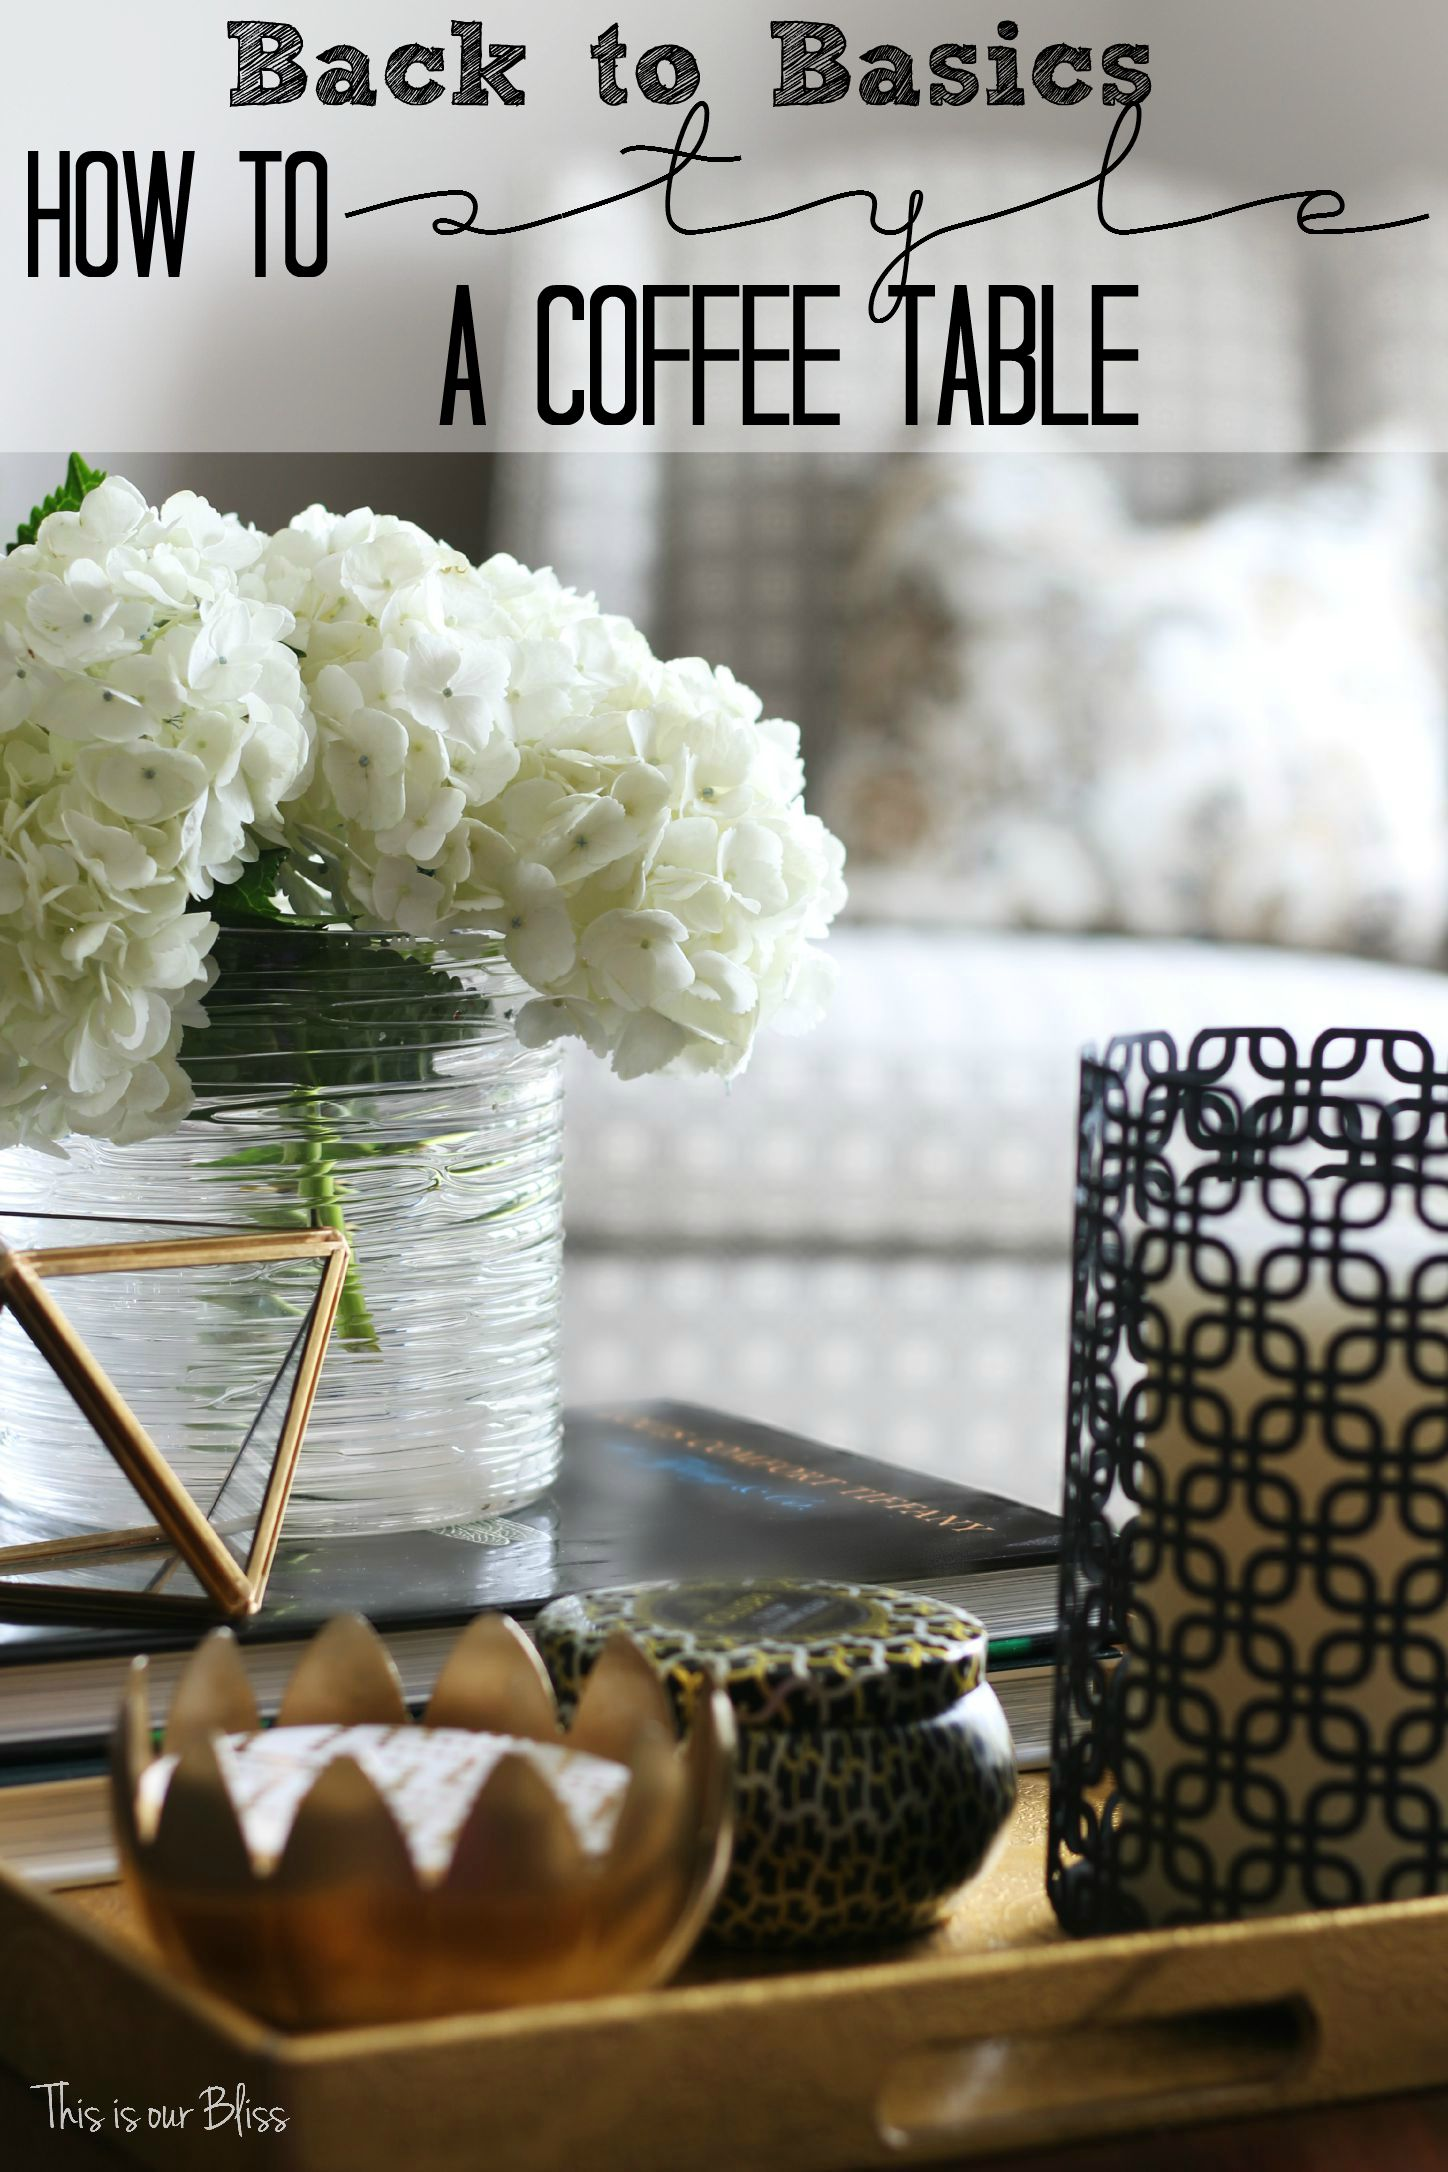 How to style a coffee table - coffee table styling - elements of a well-styled coffee table - Back to Basics 3 - This is our Bliss